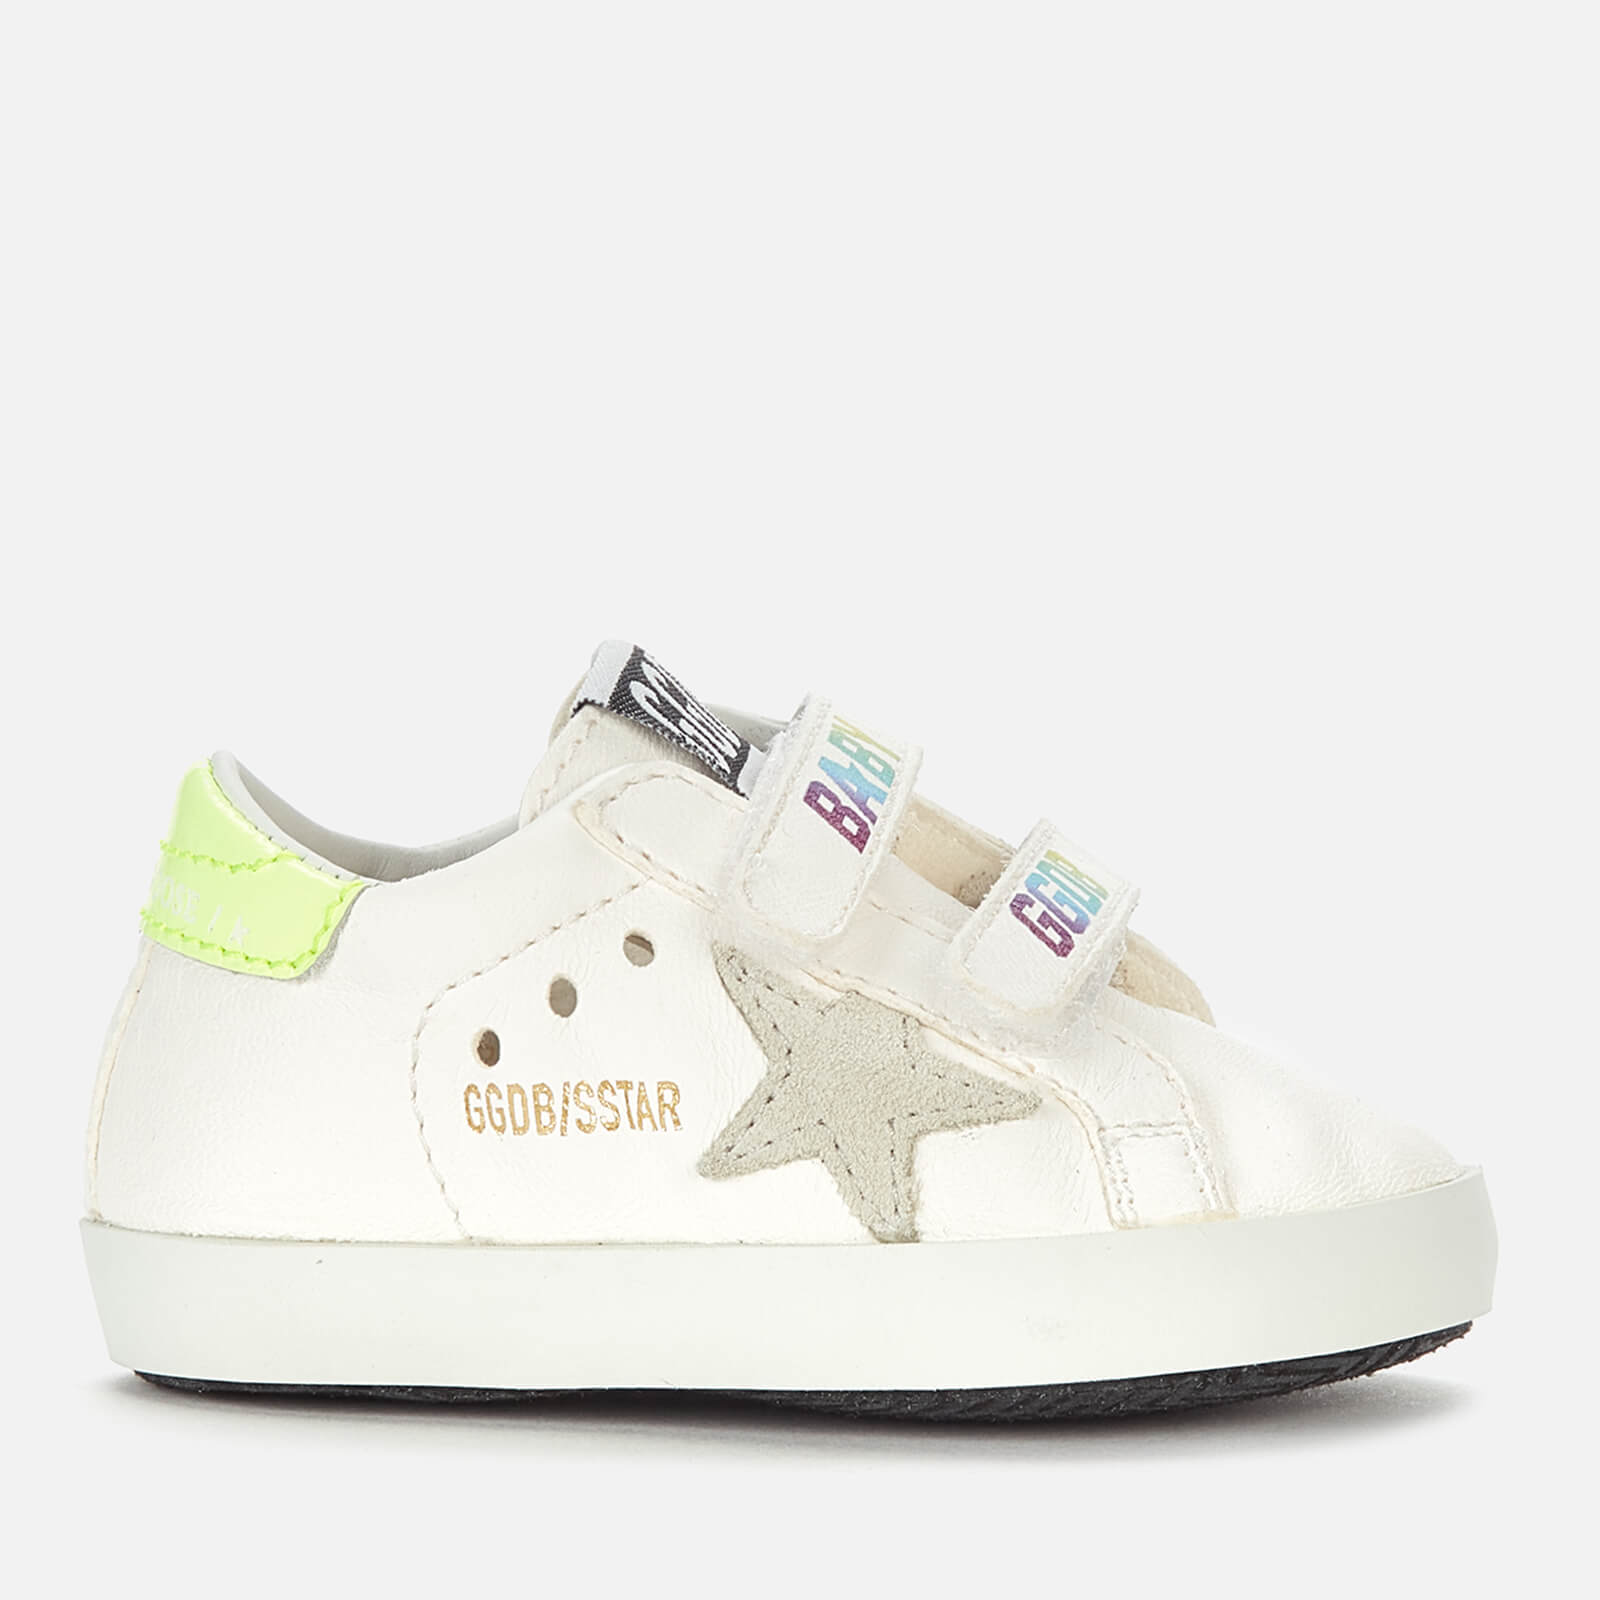 Golden Goose Deluxe Brand Babies' School Nappa Trainers - White/Ice/Yellow Fluo/Multicolor - UK 0 Infant